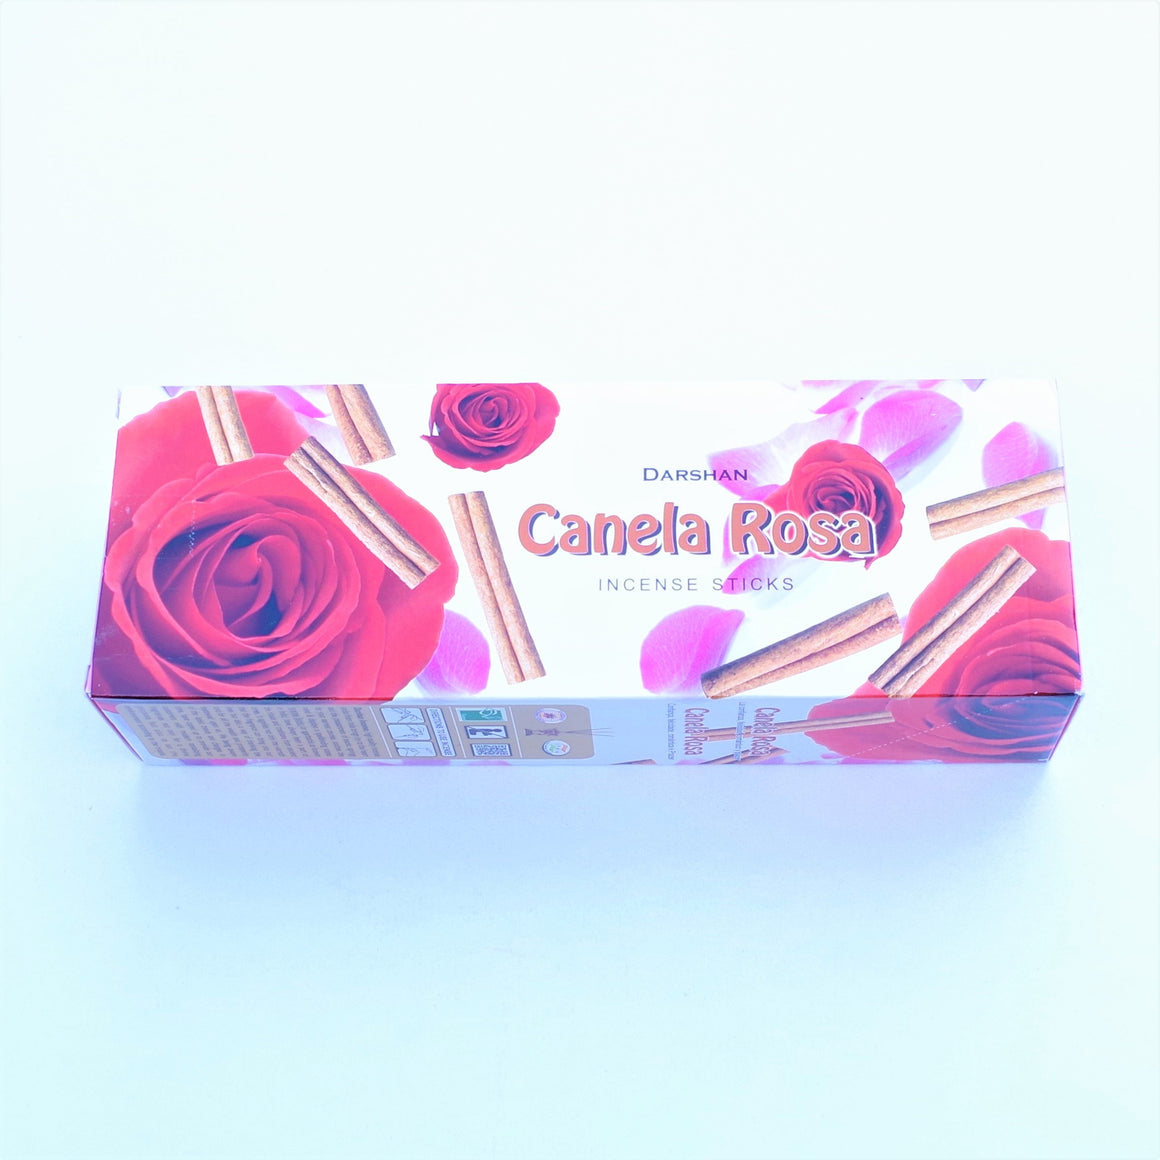 Incienso Darshan Canela Rosa (Cinnamon Rose)